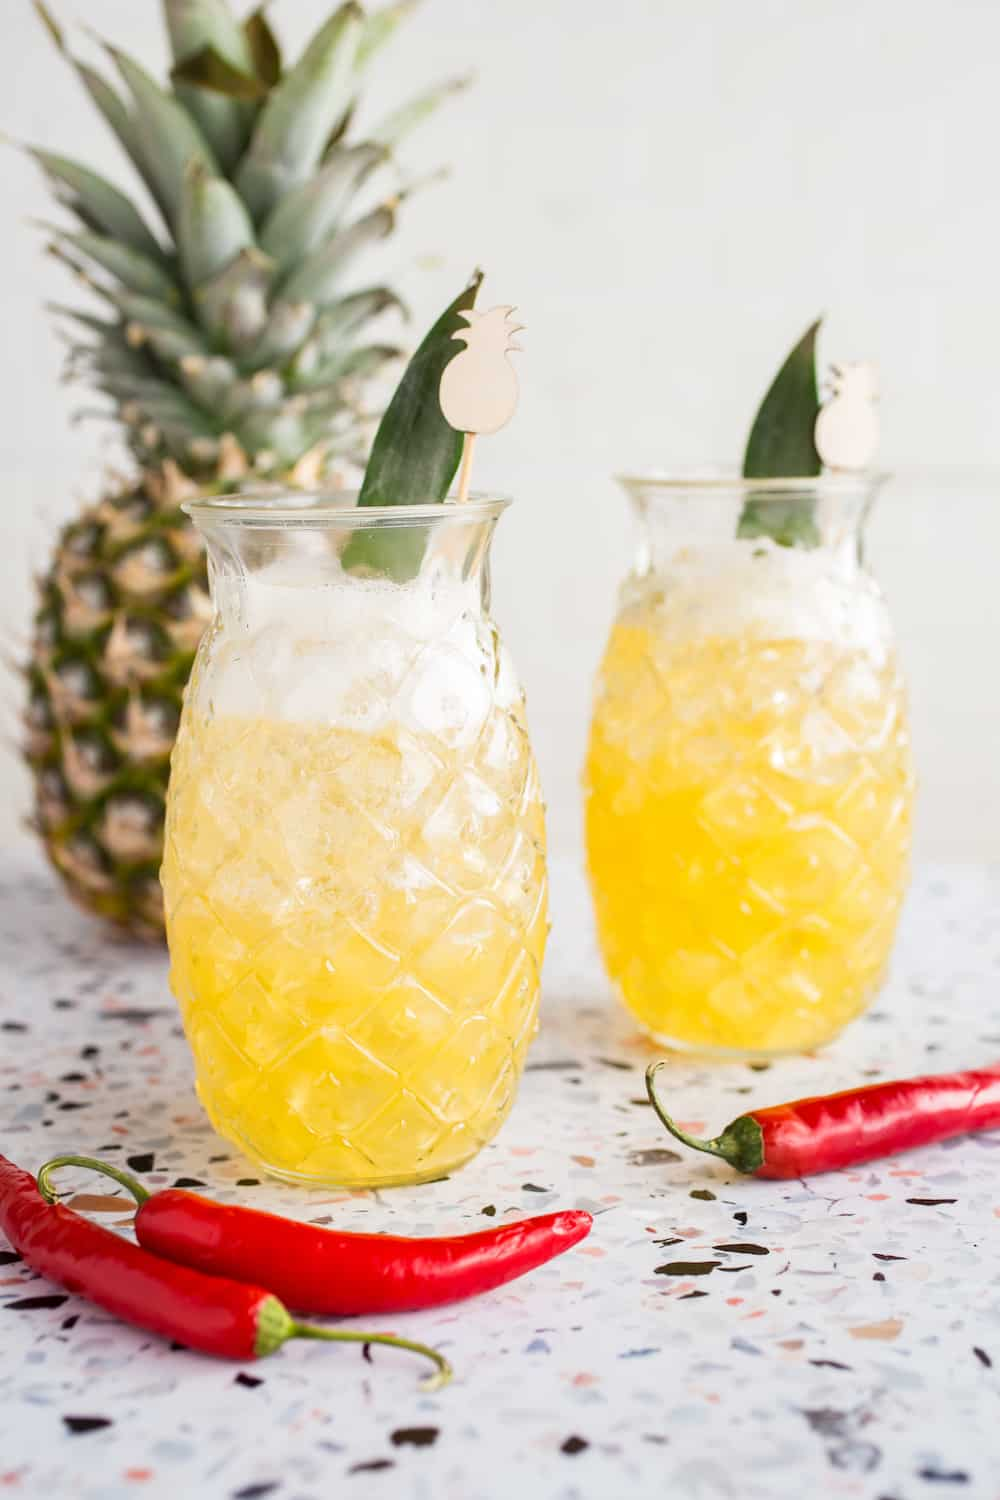 Pineapple-Chile Beer Cocktail with Hefeweizen